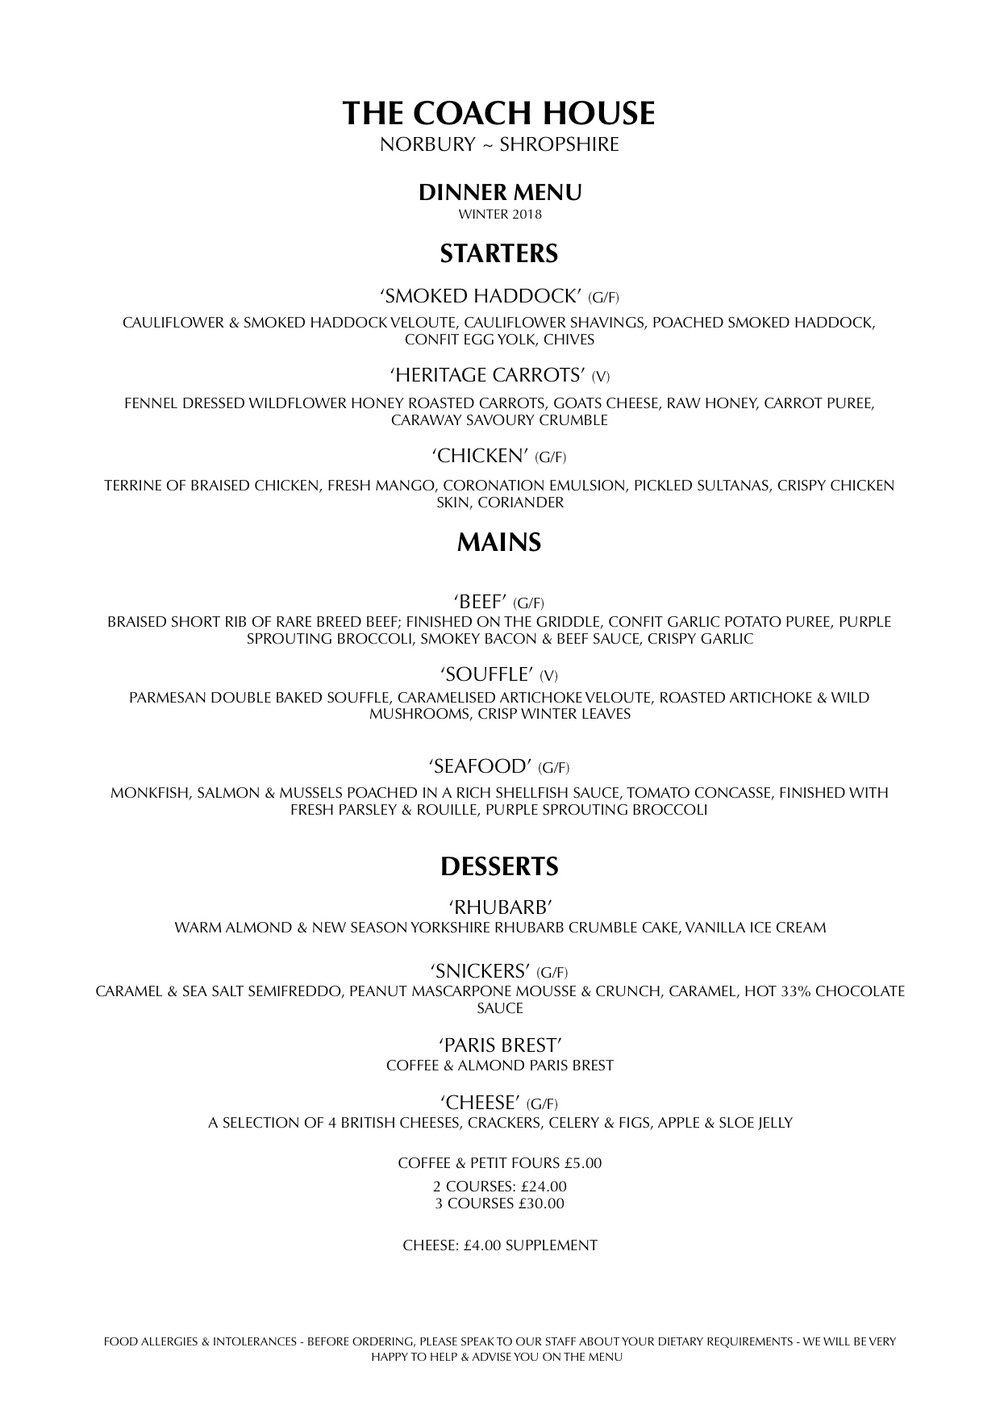 WINTER 2018 DINNER MENU.jpg